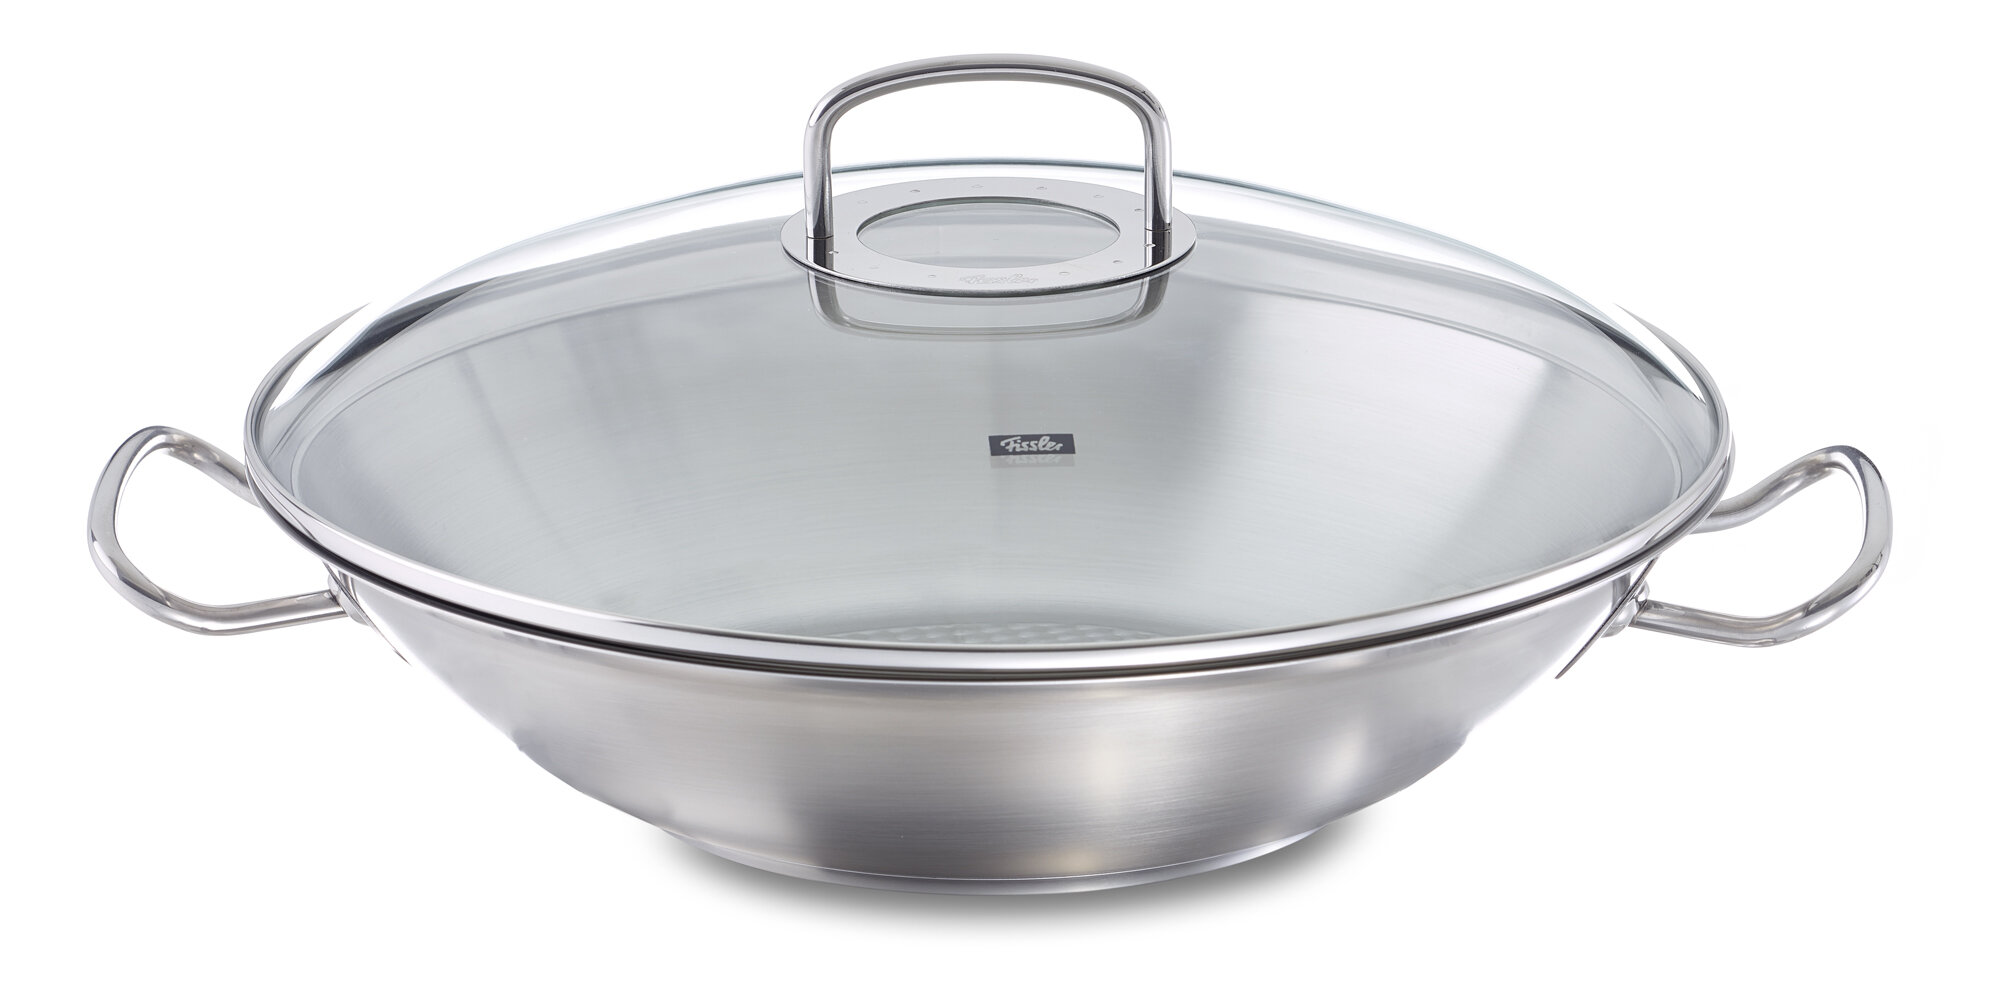 Fissler Original Profi 138 Stainless Steel Wok With Lid Wayfair